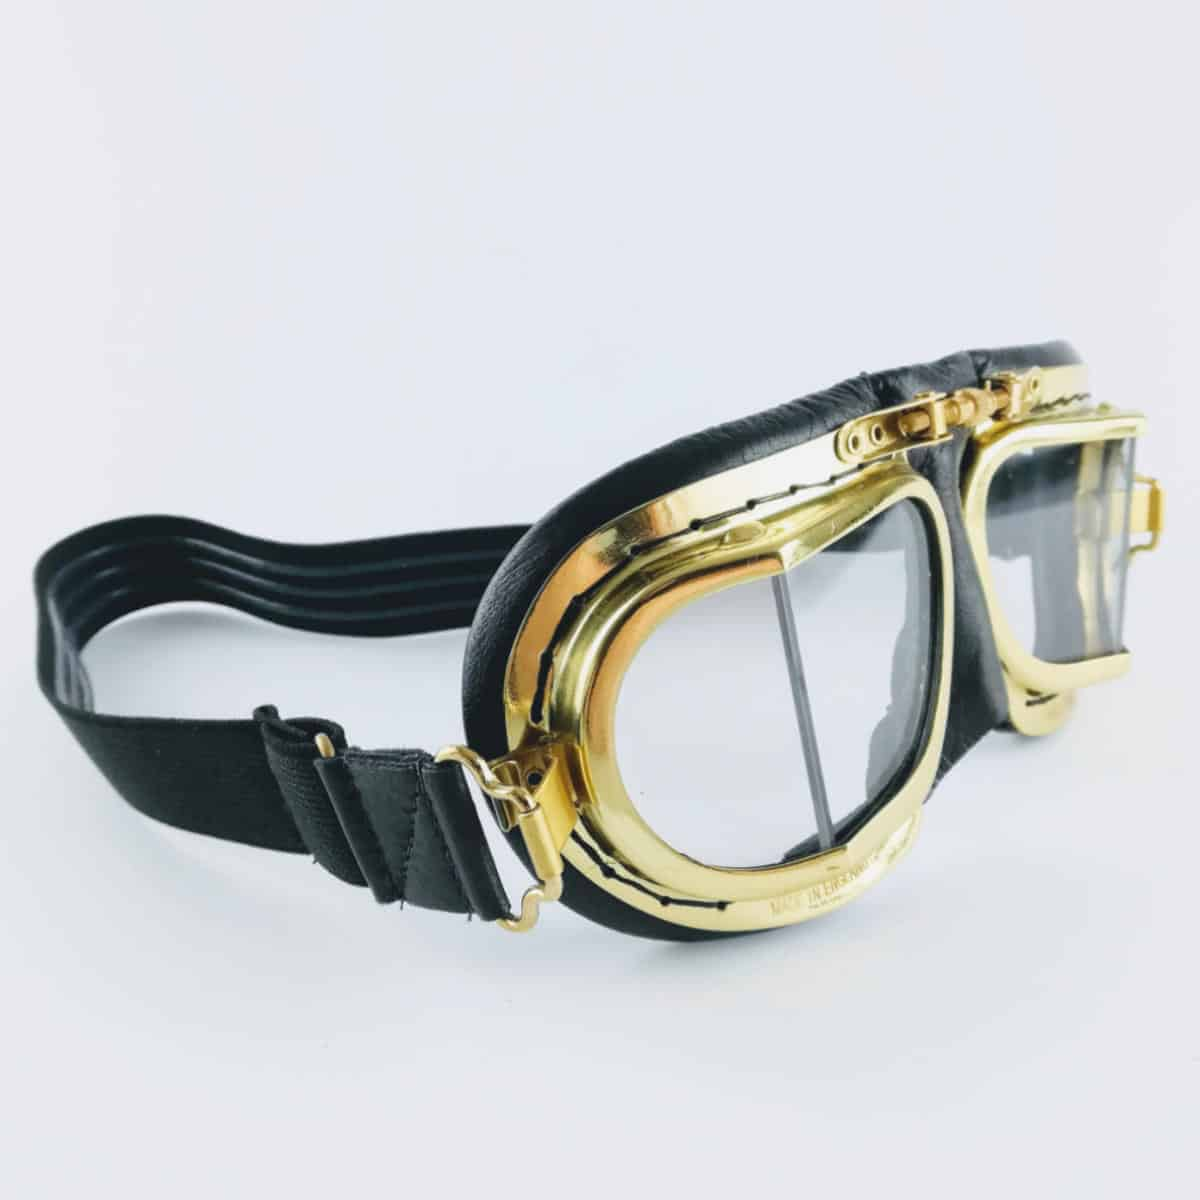 Brass goggles - British made luxury handcrafted unique gifts for him